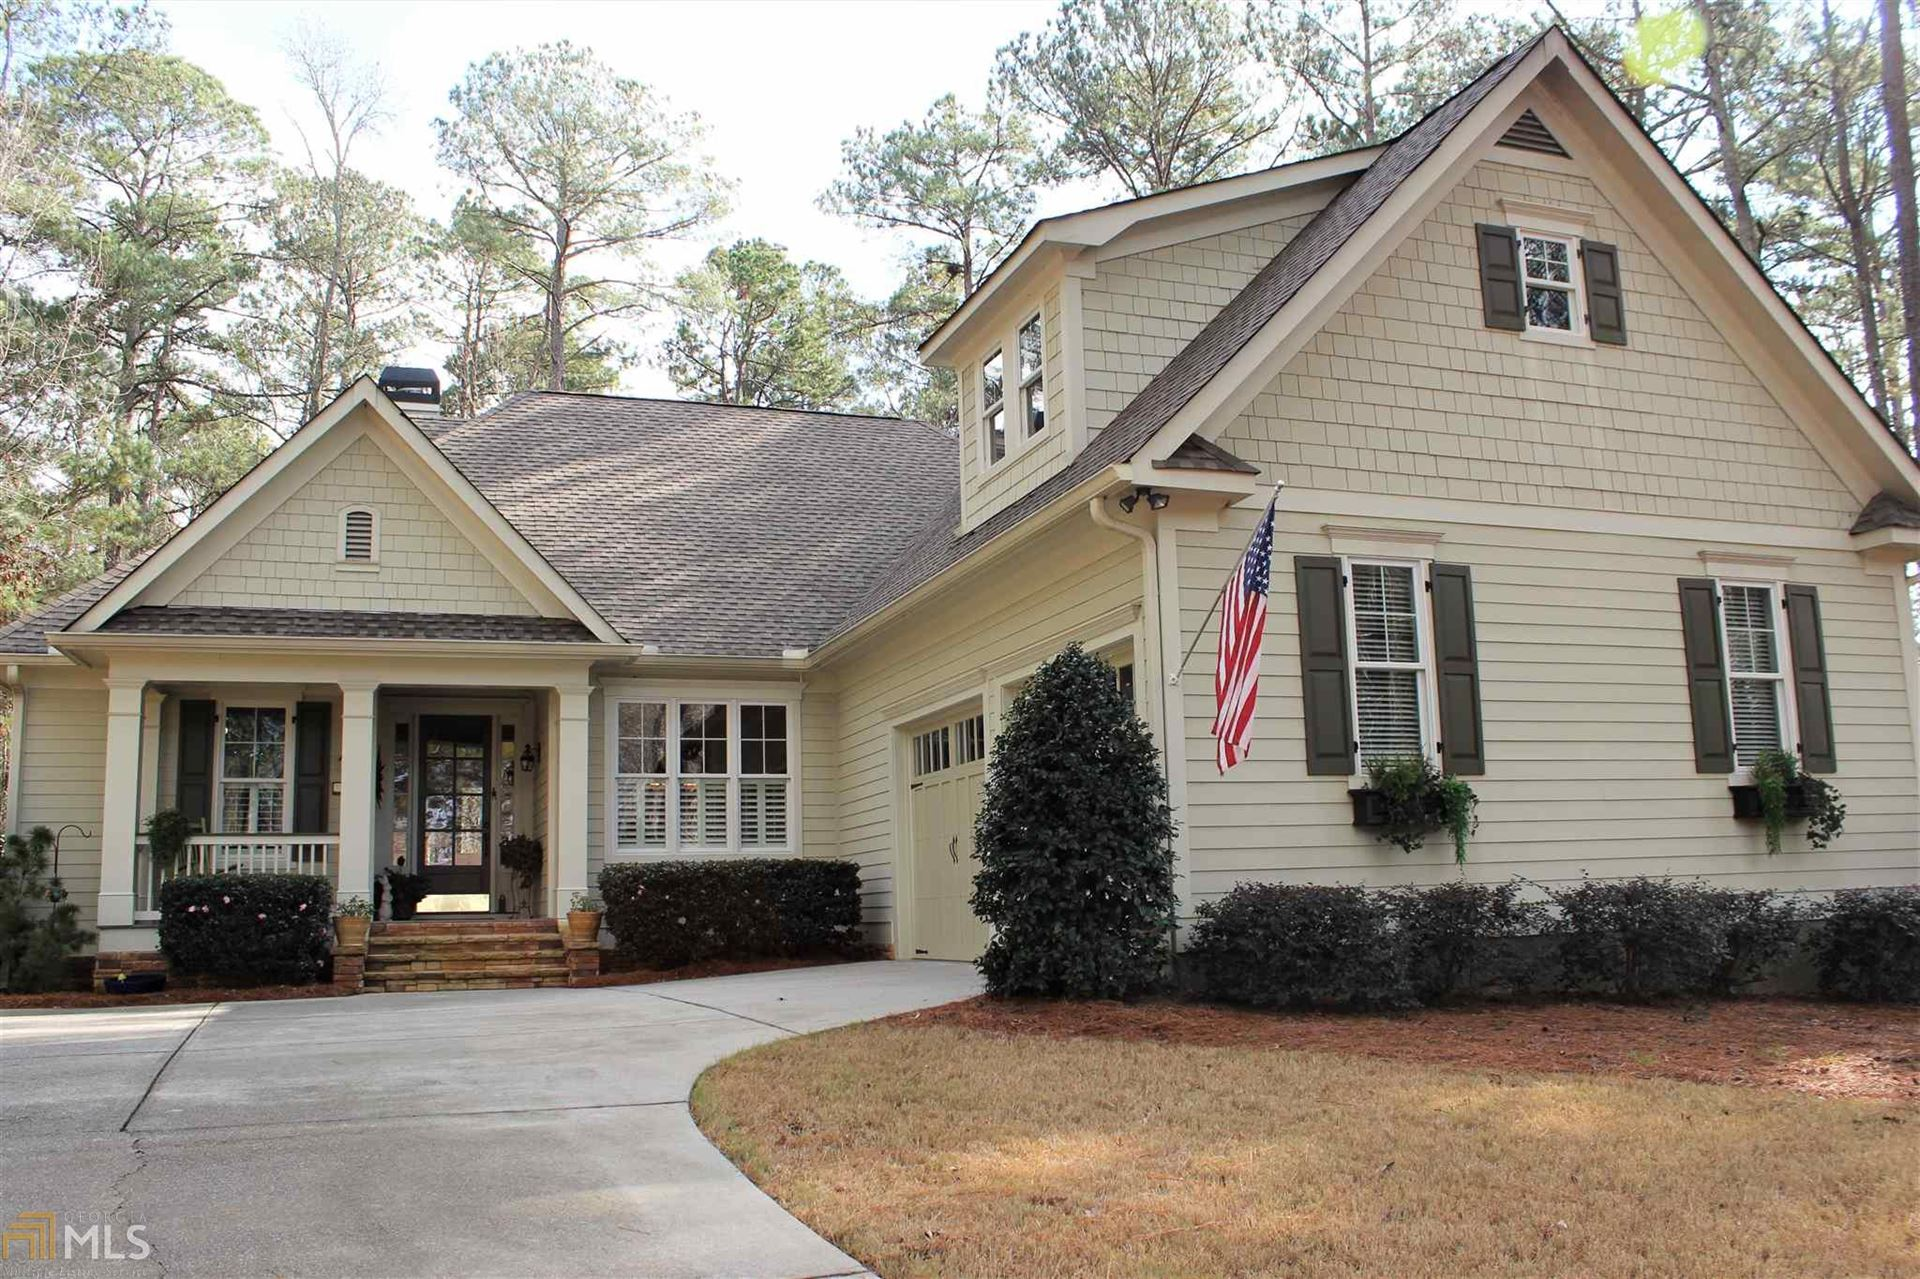 1860 Garners Ferry, Greensboro, GA 30642 - MLS#: 8910322